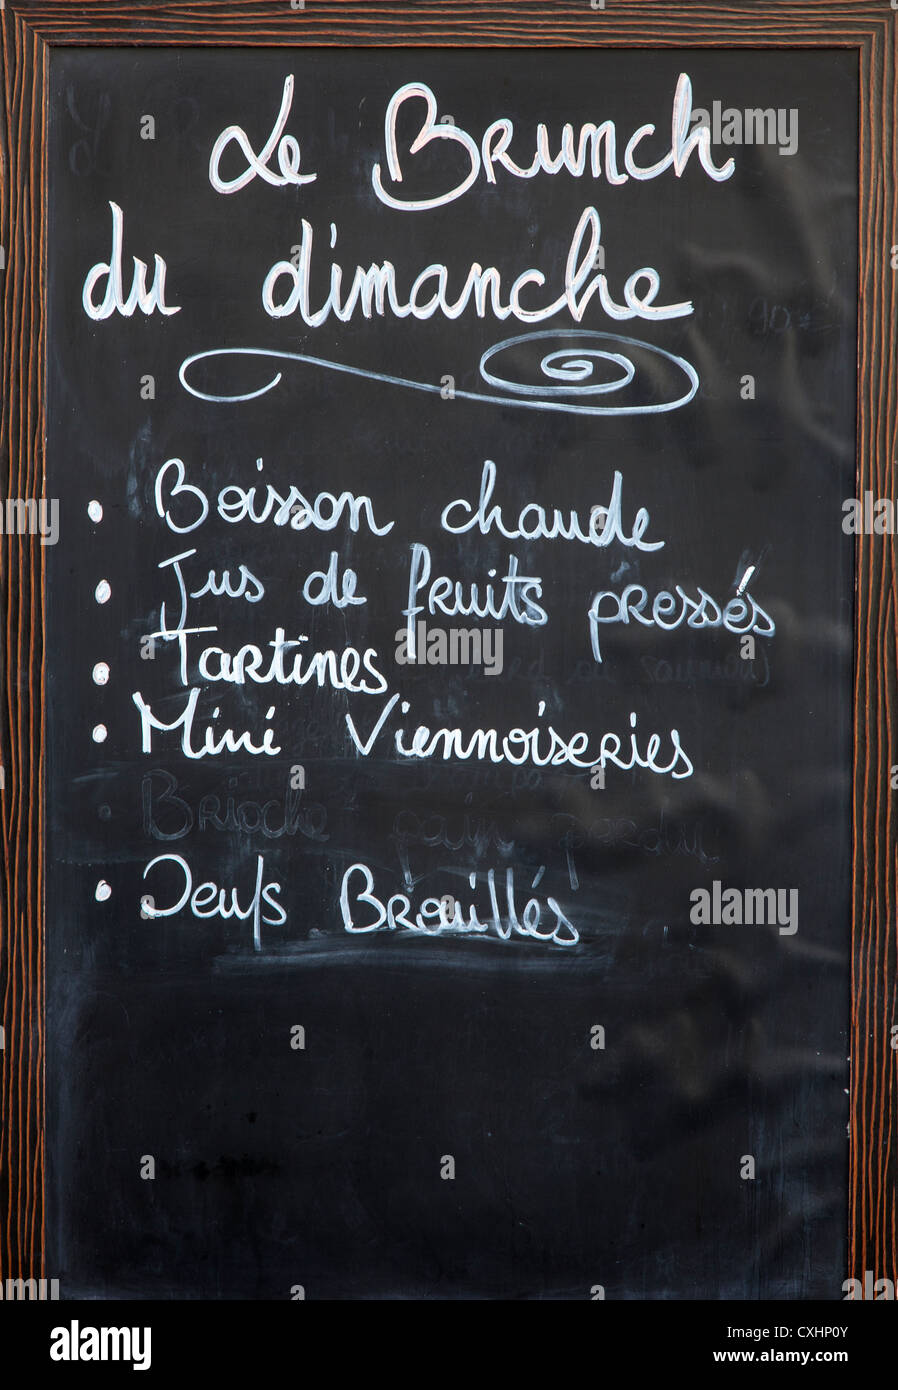 Blackboard menu showing dimanche - sunday - brunch in Chartres, Loire, France - Stock Image